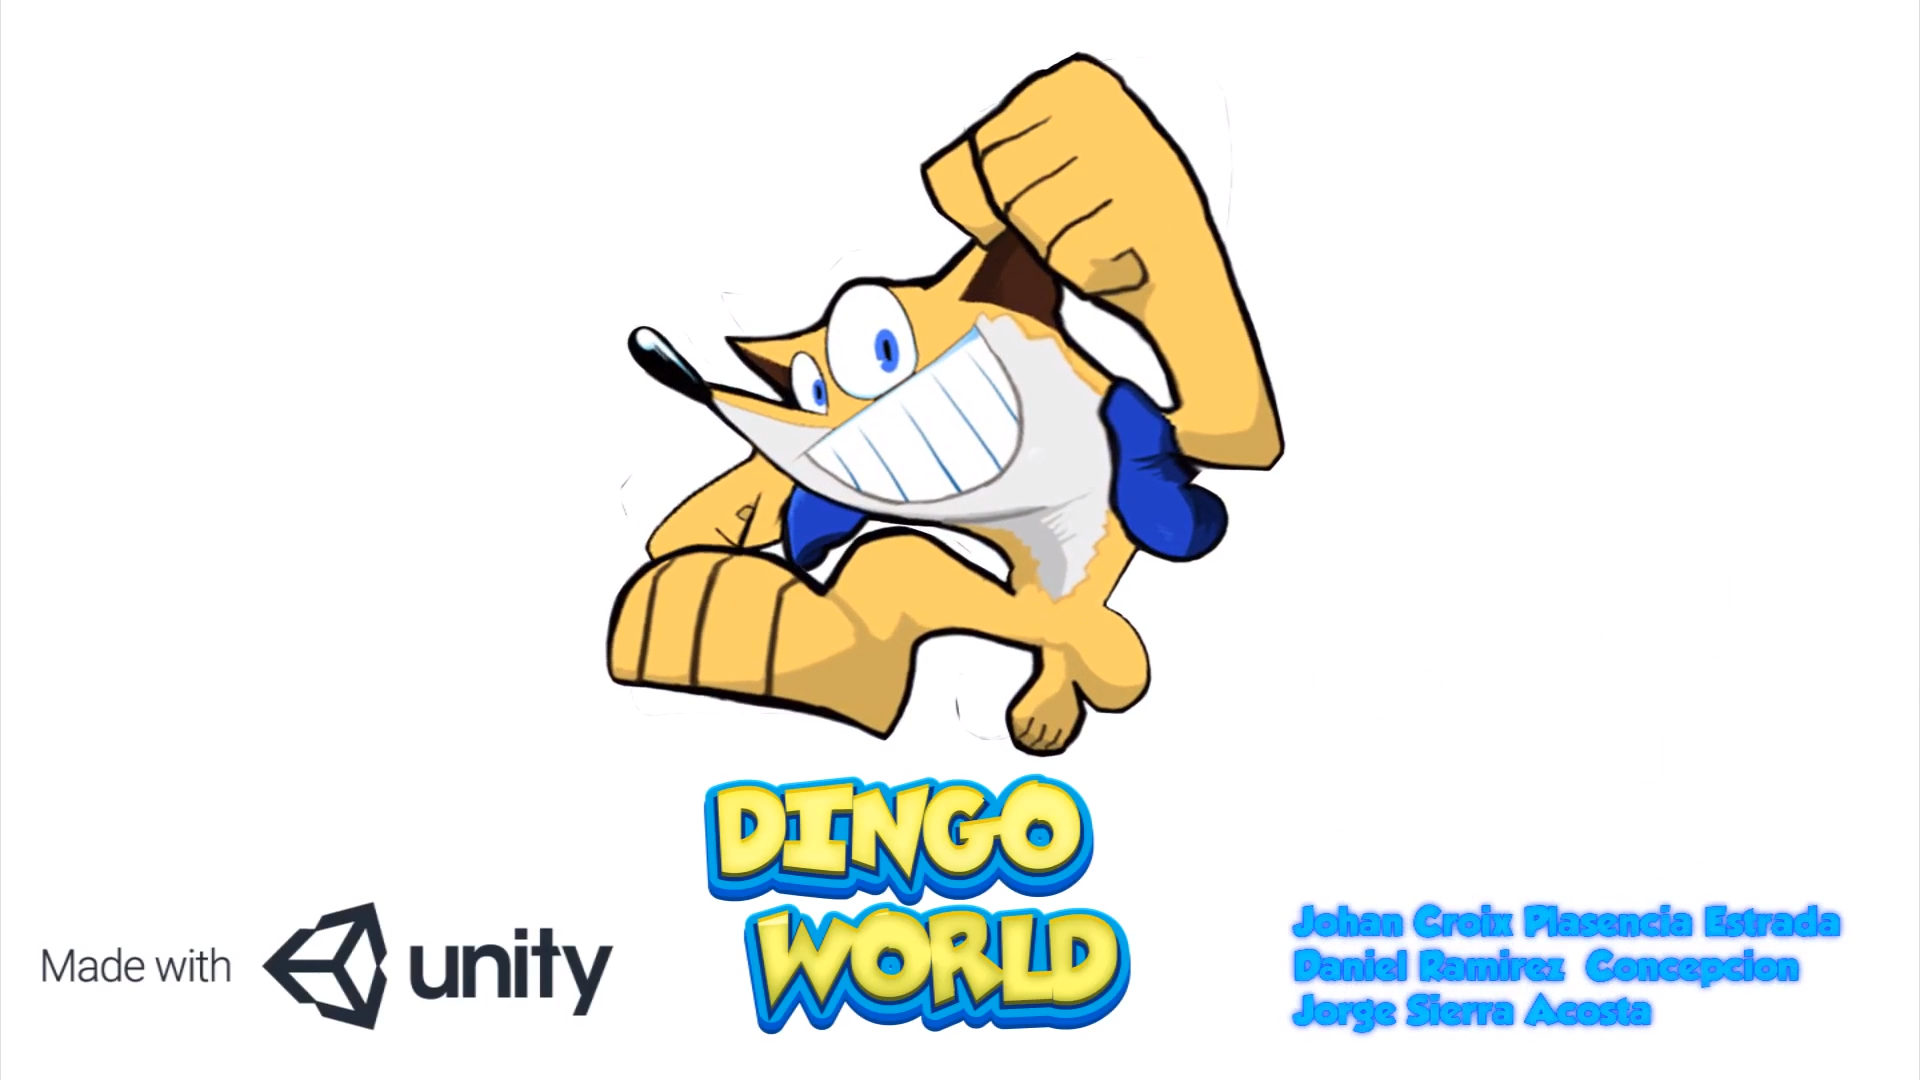 Dingo World